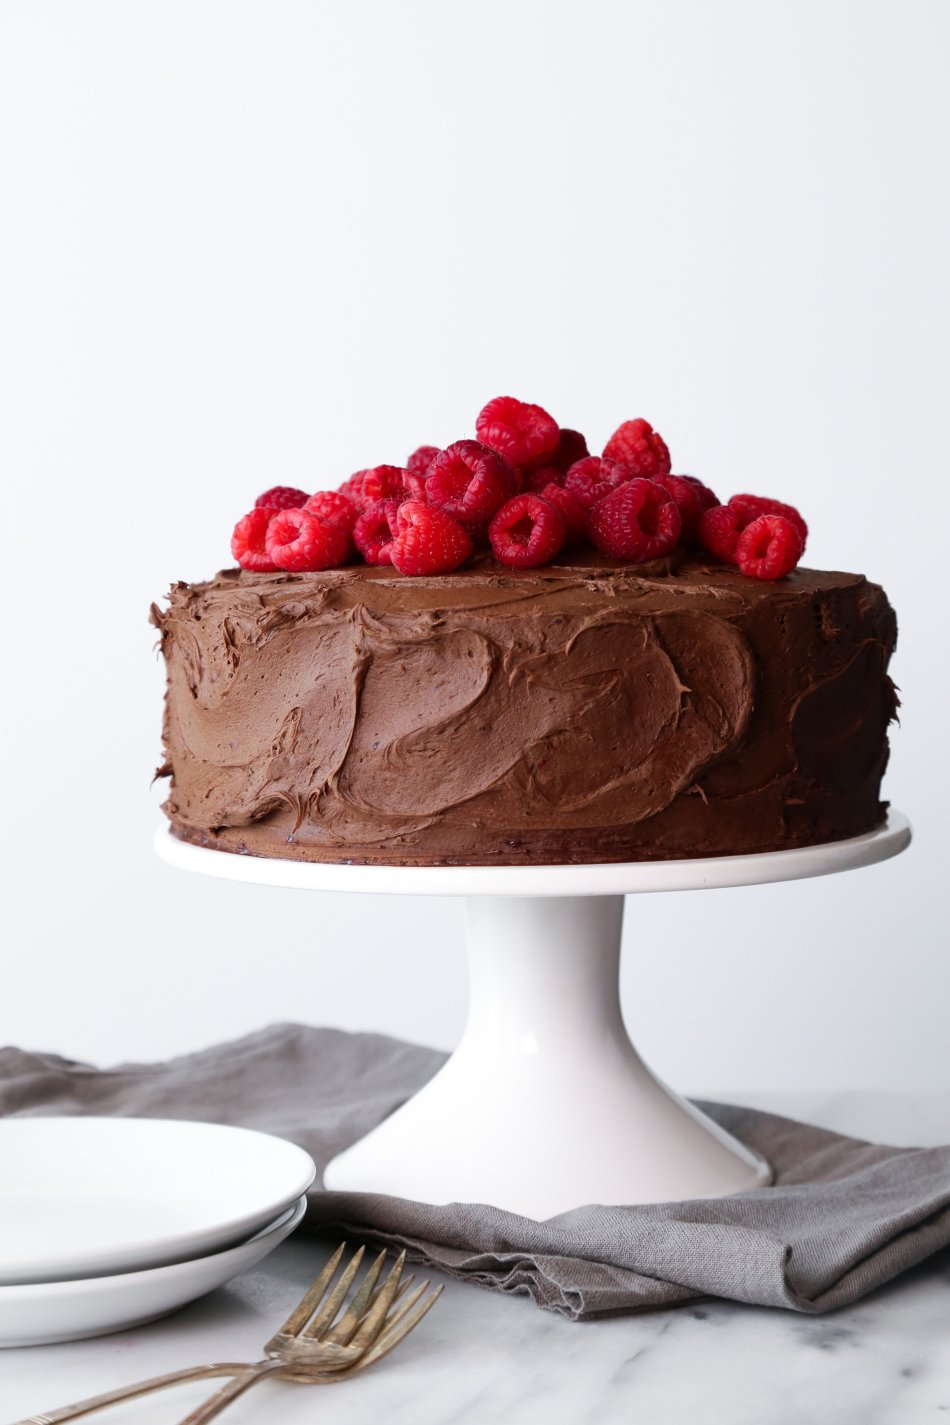 Chocolate Raspberry Layer CakeChocolate-Raspberry Layer Cake | Gluten & Dairy Free. Vegan Friendly.